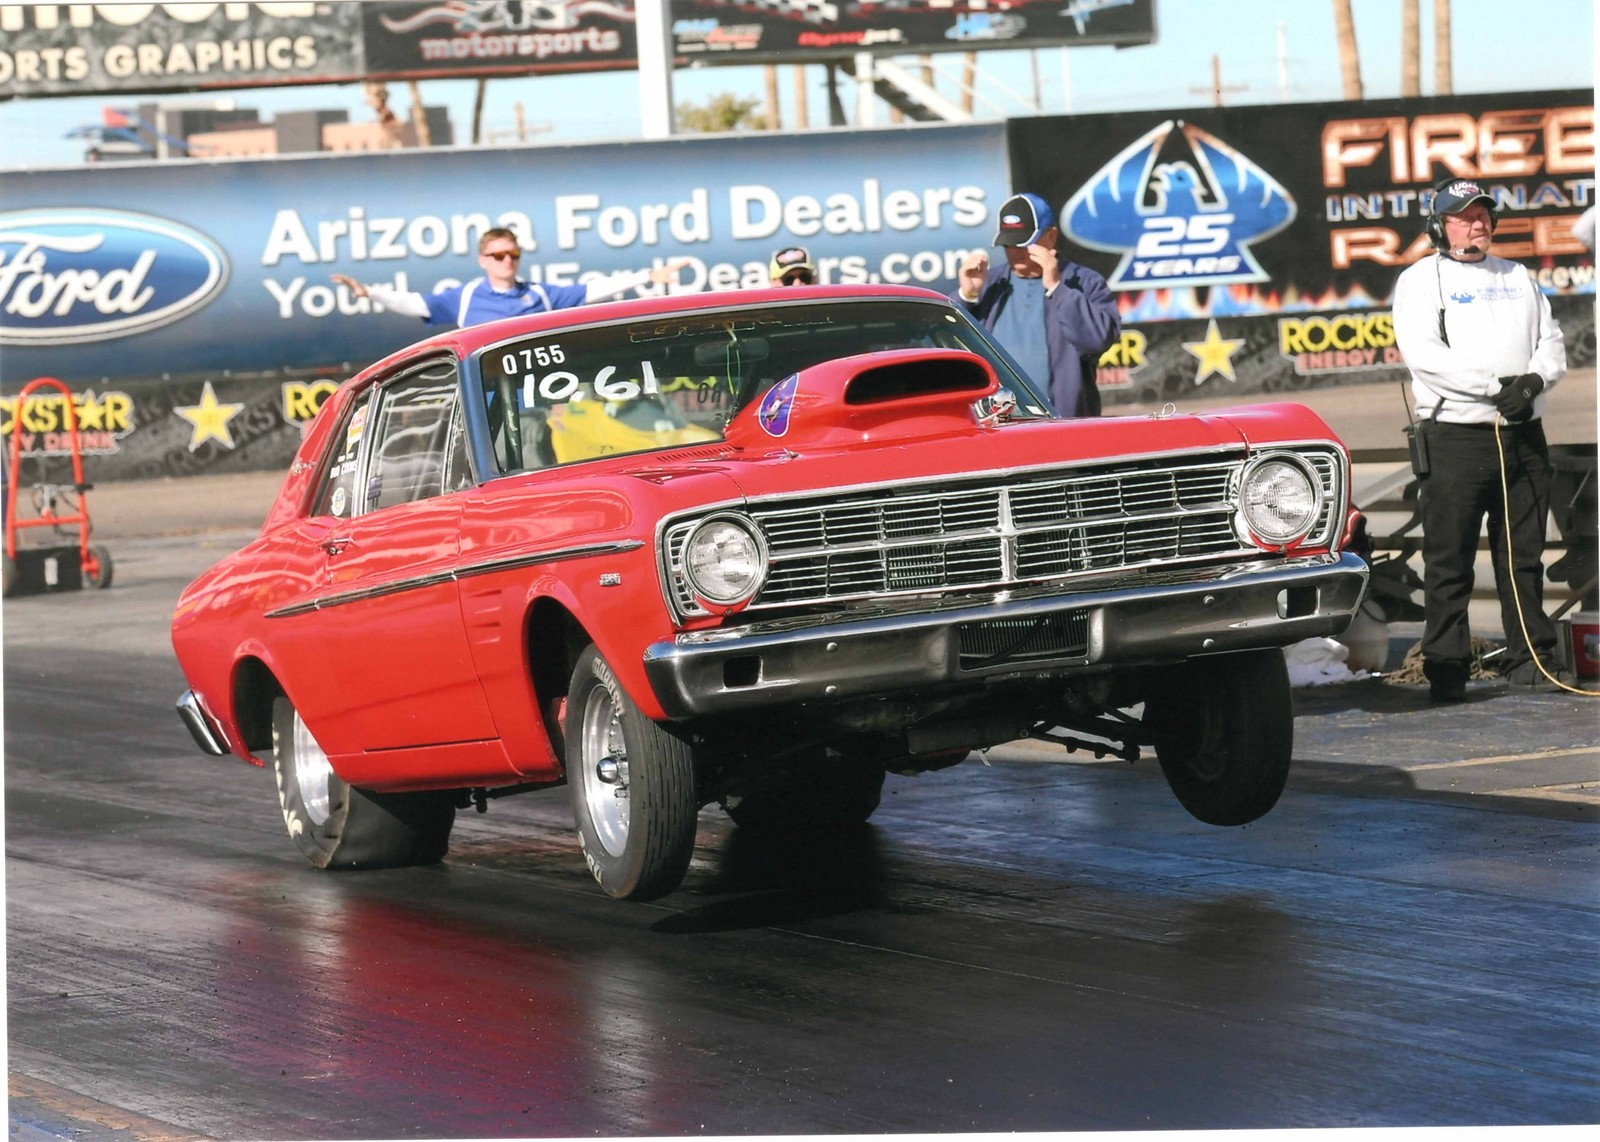 RED 1967 Ford Falcon Sport Coupe